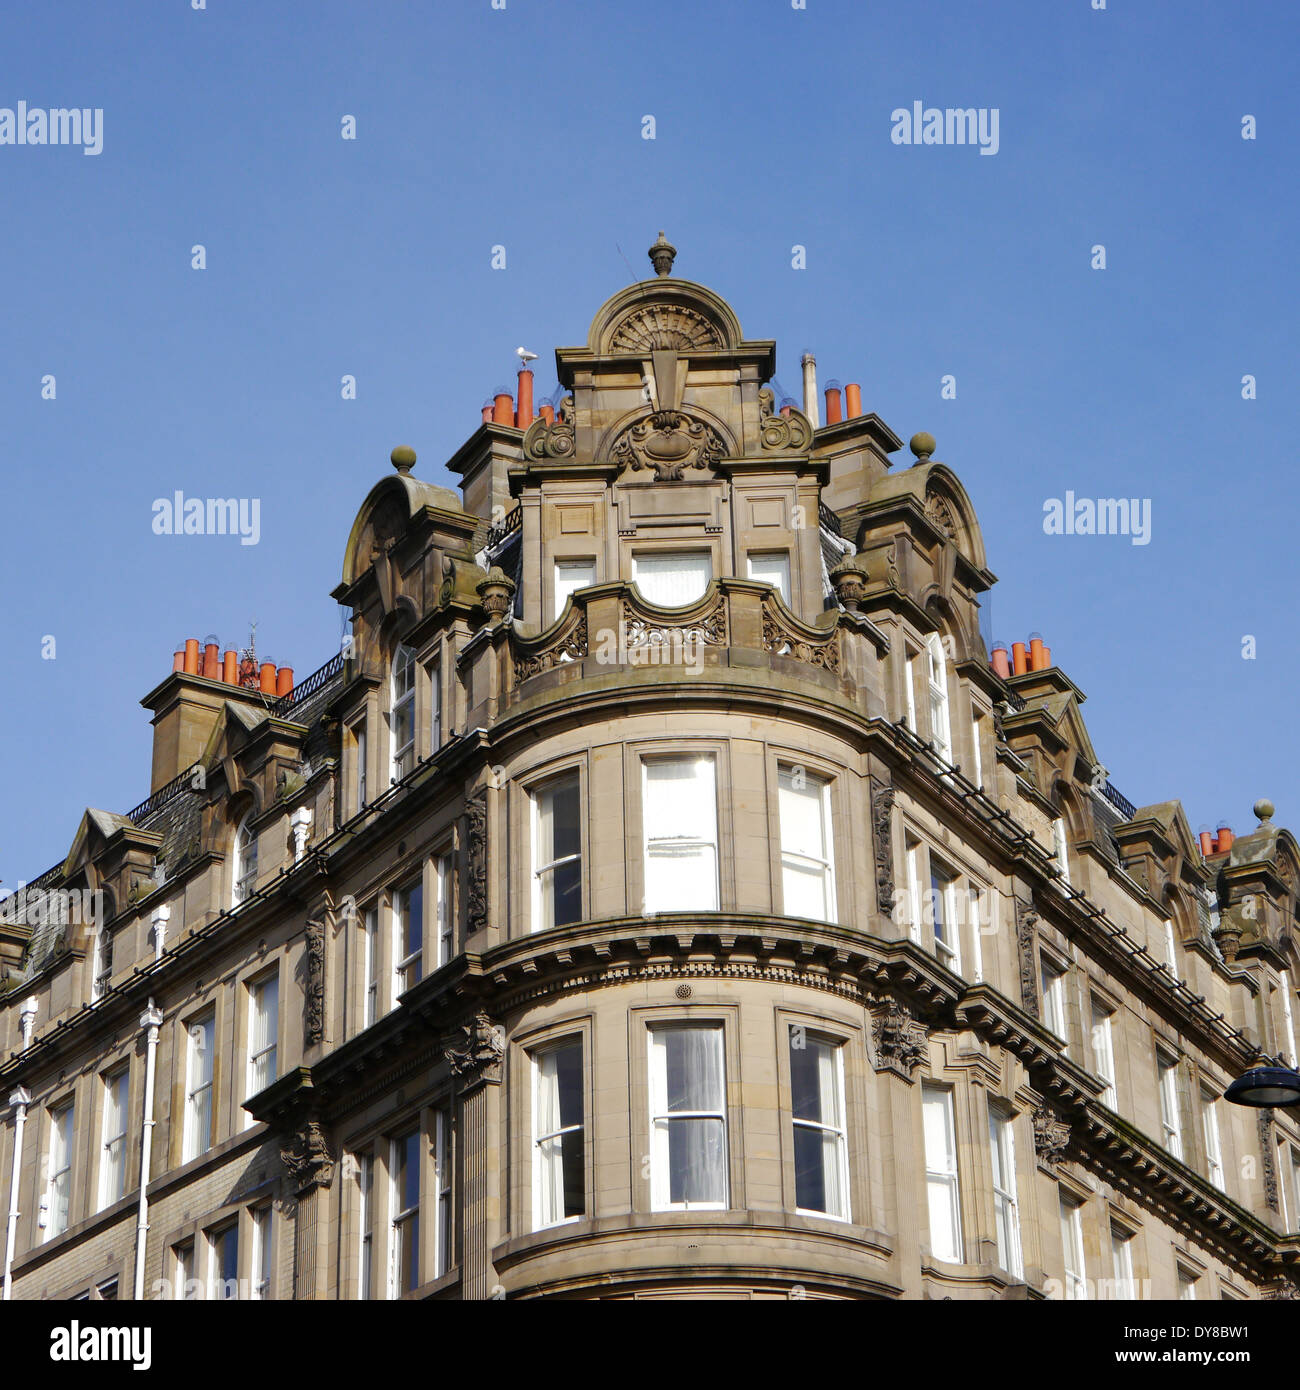 Neo Classical Architecture Stock Photos & Neo Classical ...